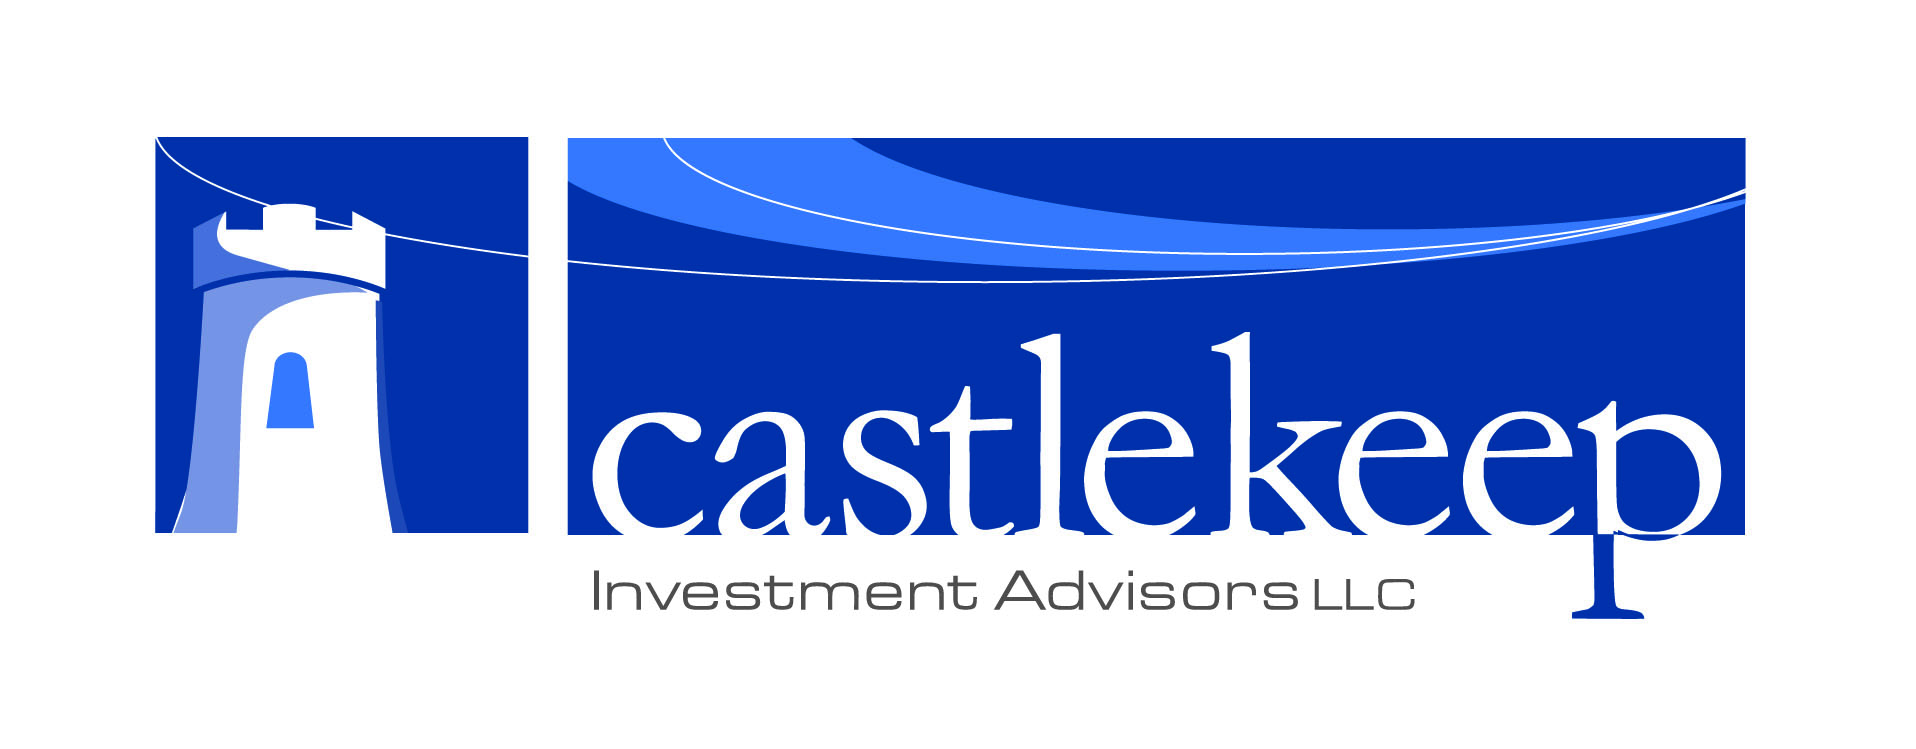 CastleKeep Investment Advisors